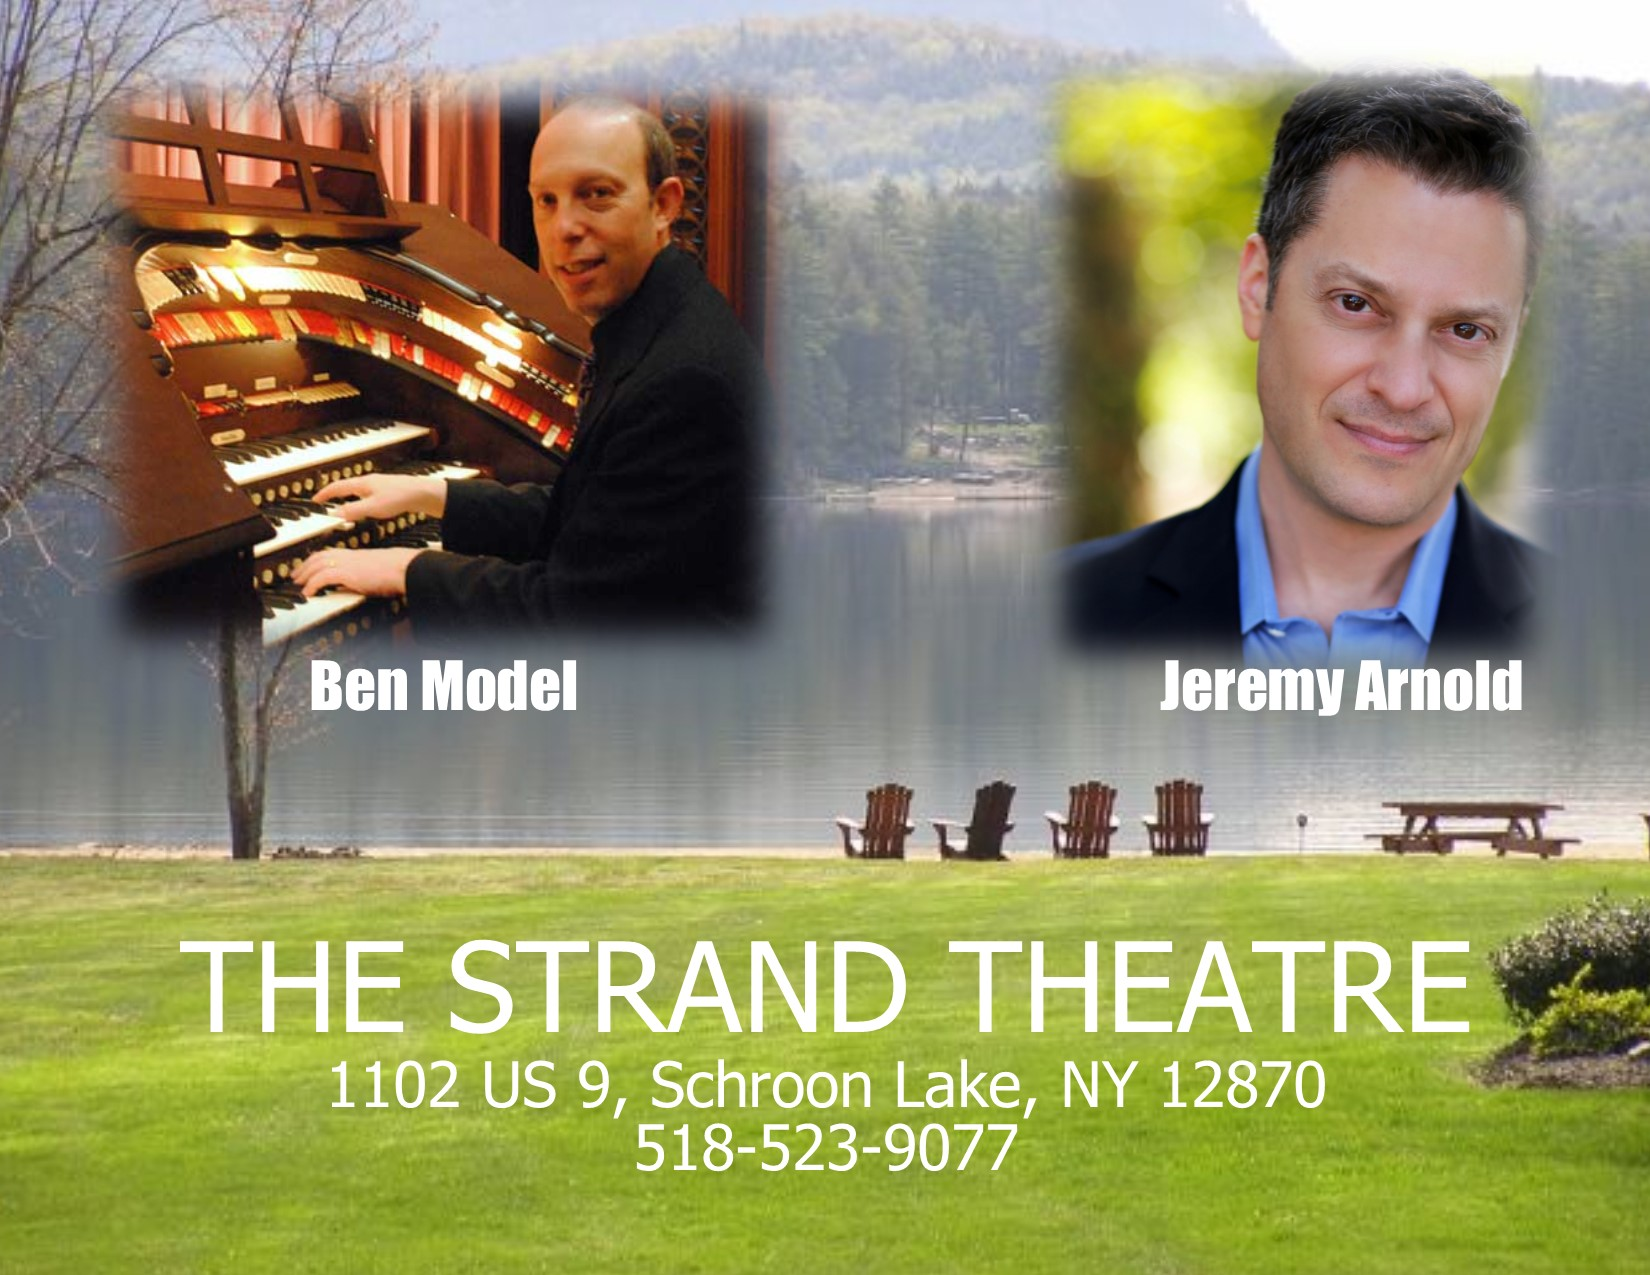 "WHAT MAKES A CLASSIC?    Find out on two Mondays this season as the ""Summer Classics"" series at the Strand in Schroon Lake presents silent comedy shorts starring the legendary Buster Keaton and TCM's choice for the greatest Hollywood movie ever!    ""Silence is of the gods; only monkeys chatter.""  —Buster Keaton  July 8, 2019 SCHROON LAKE, NY — The only way to truly tell if a new work of art is destined to be a classic is through the test of time. On two Mondays this summer, filmgoers at the Strand Theater in Schroon Lake, New York—itself a classic Art Deco movie house—will be treated to movies that have not only stood the test of time but aced it:  ● On Monday, July 29, at 8 pm, the 2019 edition of ""Summer Classics @ the Strand"" opens with an evening of three silent comedy shorts starring one of the most physically daring actors ever to perform in movies—the irrepressible Buster Keaton—with live piano scoring by Ben Model, resident film accompanist at the Library of Congress and New York City's Museum of Modern Art. The films—One Week, The Scarecrow and The Blacksmith, all of which date from the Golden Age of silent movies, the early 1920s—were recently restored by Lobster Films and have been handpicked by Model, who will introduce each short and lead a Q&A discussion with the audience following the screenings.  ● Then on Monday, August 12, at 8 pm, ""Summer Classics @ the Strand"" presents one of the most romantic-iconic films ever made and what Turner Classic Movies (TCM) hails as ""Our candidate for the best Hollywood movie of all time""—Casablanca (1942), starring the one-and-only Humphrey Bogart as American ex-patriate saloon owner Rick Blaine and the radiant Ingrid Bergman as Rick's long-lost love, Ilsa Lund. The program will be hosted by film historian Jeremy Arnold, himself a TCM contributor and author of the TCM-tie-in books, The Essentials: 52 Must-See Movies and Why They Matter (which, of course, includes Casablanca) and his latest work, Christmas in the Movies: 30 Classics to Celebrate the Season. If you've only seen Casablanca on TV, your laptop or even the tiny screen of your smart-phone, this is the perfect opportunity to view the movie on the big screen—and in stunning digital format that is featured at the Strand.  Tickets to each evening's program are $10 and will be available at the door (cash only, please). The historic Strand Theater is located at 1102 Main Street (U.S. Route 9), Schroon Lake, NY; box office: 518-532-9077. To learn more, please contact Fred Balzac, Program Director of the ""Summer Classics @ the Strand"" series, at 518-588-7272 or by e-mail at fredbalzac@aol.com or adirondackfilmsociety@gmail.com.  And speaking of stunning digital viewing, this is the fourth consecutive summer that the Strand is partnering on special programming with the Adirondack Film Society (AFS)—the people who bring you the annual Lake Placid Film Festival and the monthly (September through May) AFS Screening Series at the Lake Placid Center for the Arts. It was a collaboration between the two organizations resulting in a New York State Council on the Arts (NYSCA) Regional Economic Development Council (REDC) grant award—along with the tremendous generosity of the Schroon Lake-area community—that helped Larry and Liz McNamara, the theater's owner-operators, purchase and install digital film-projection equipment, enabling the Strand to continue as a first-run movie house.  ]END[   Press Release by Fred Balzac on behalf of Adirondack Film Society"